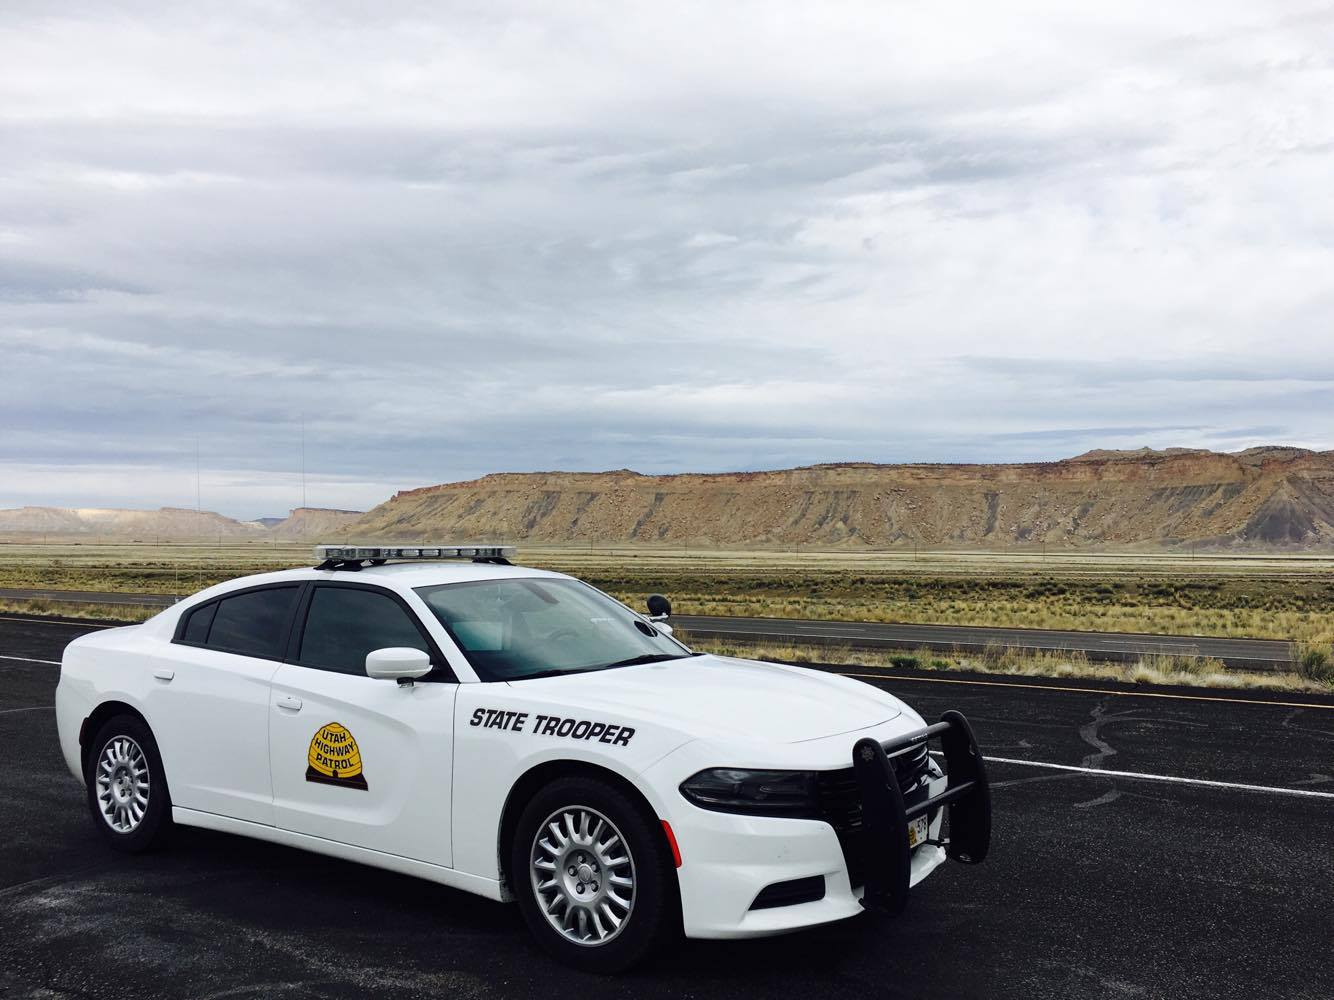 UHP Dodge Charger in eastern Utah.